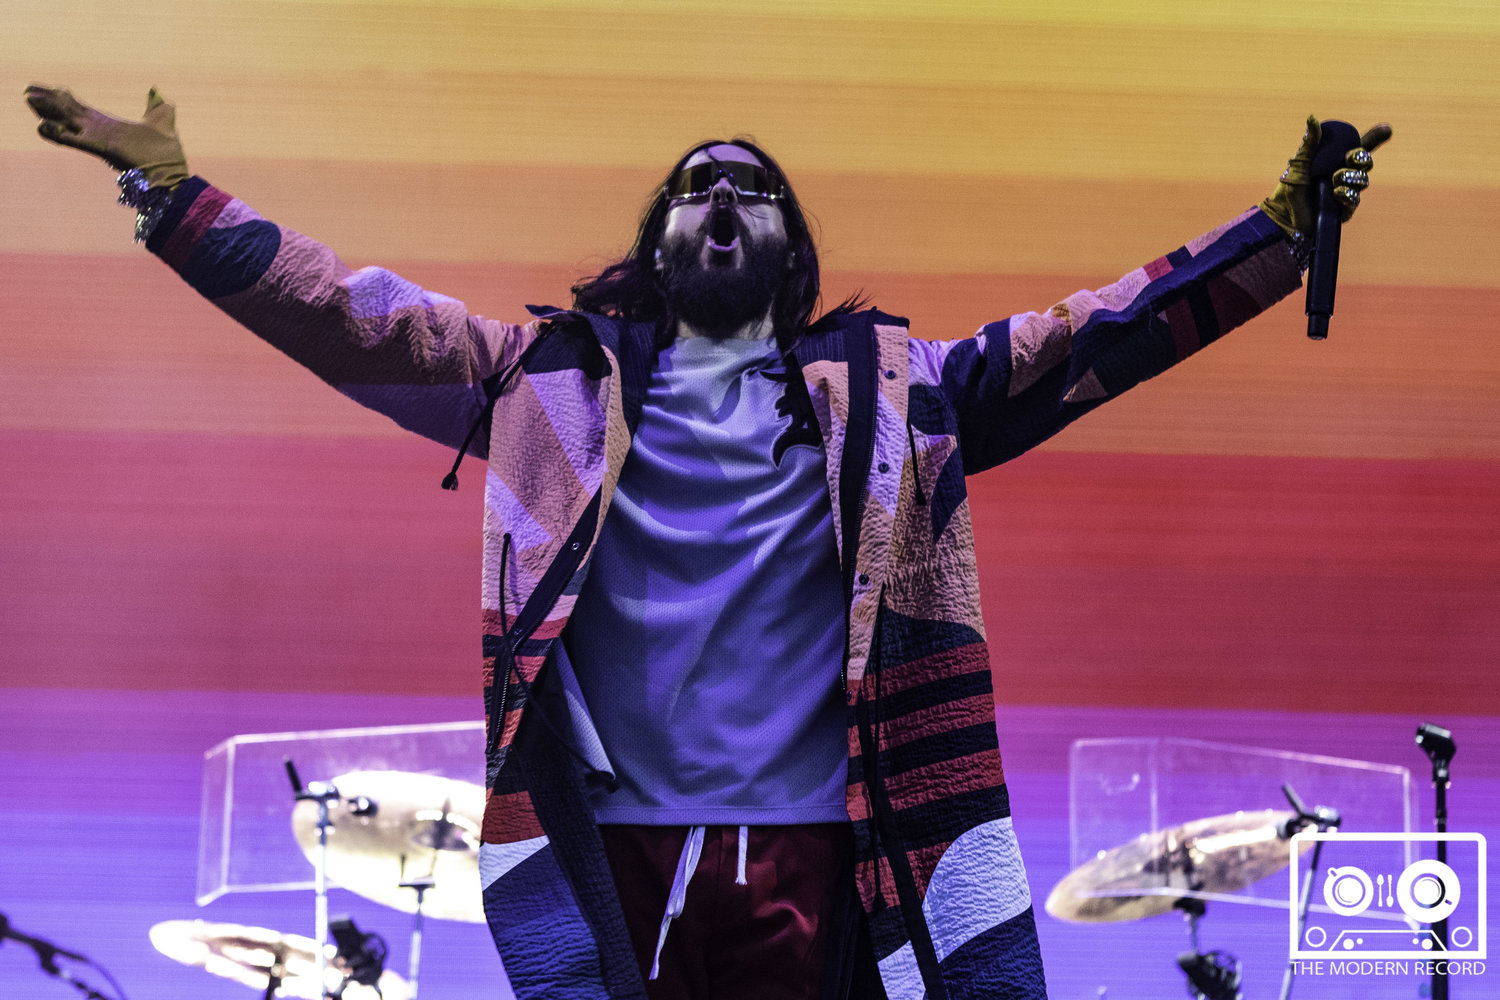 30 SECONDS TO MARS CLOSING FINAL DAY AT NEWCASTLE'S NEWEST OUTDOOR MUSIC FESTIVAL 'THIS IS TOMORROW' - 26.05.2018  PICTURE BY: CALUM BUCHAN PHOTOGRAPHY